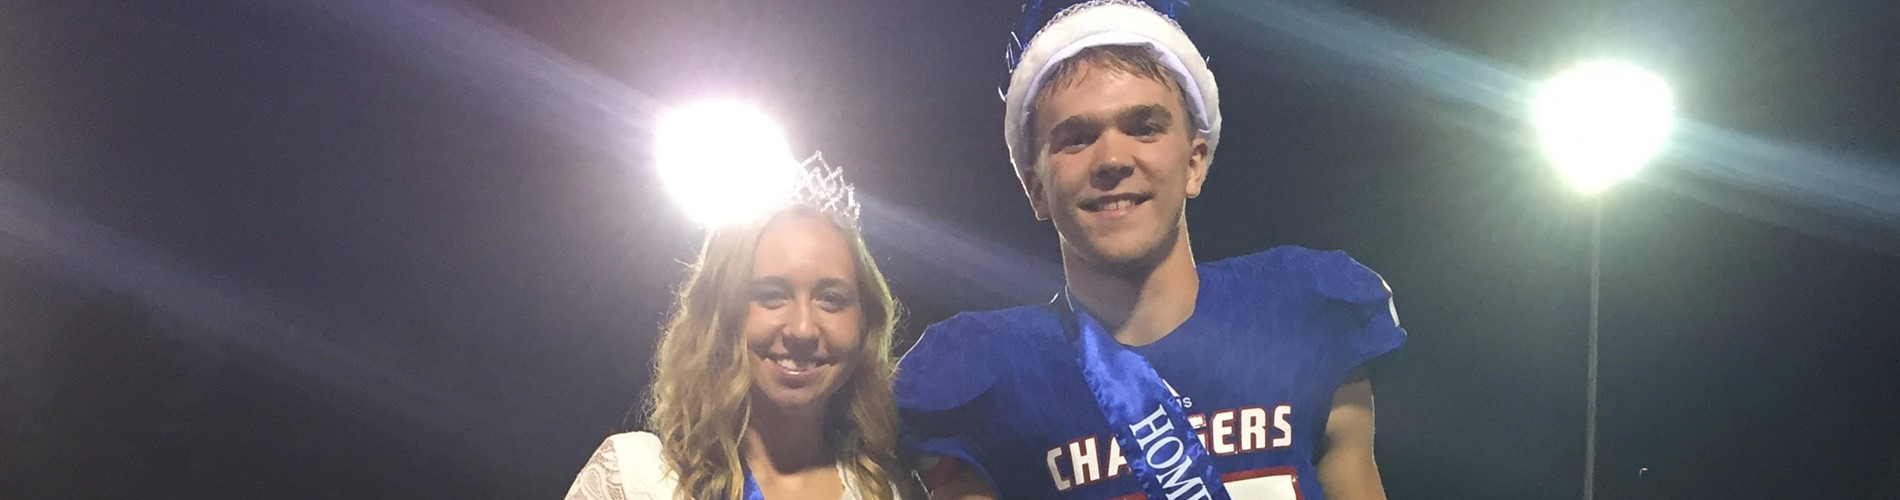 Megan and Chase, homecoming queen and king.